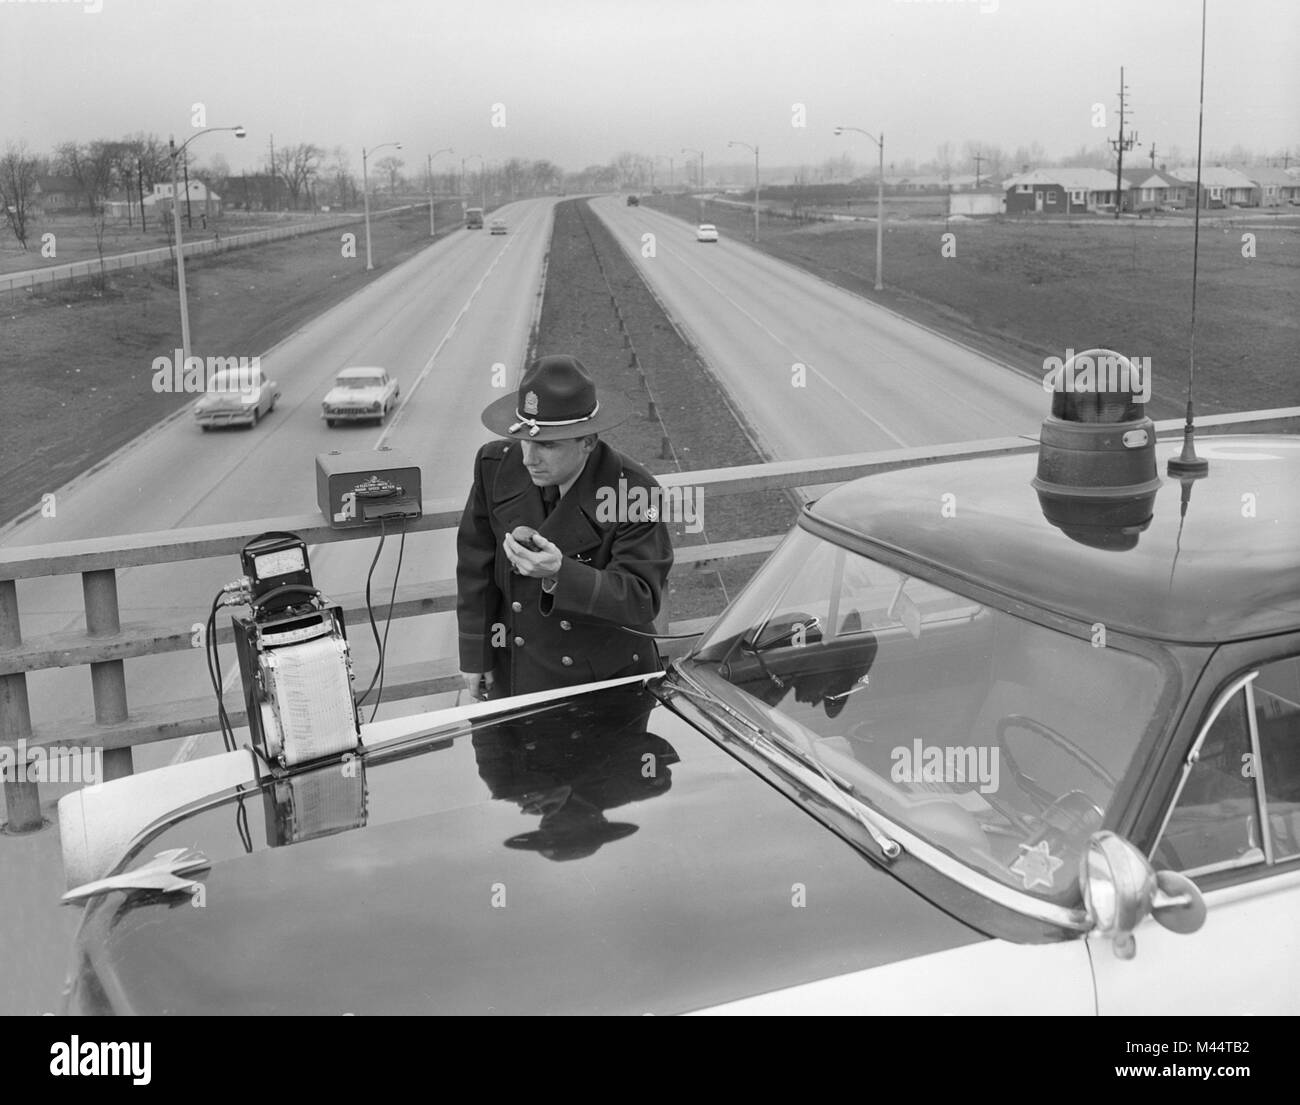 Policeman uses the new technology of radar to catch speeders on the Edens Expressway in Chicago, ca. 1960. - Stock Image